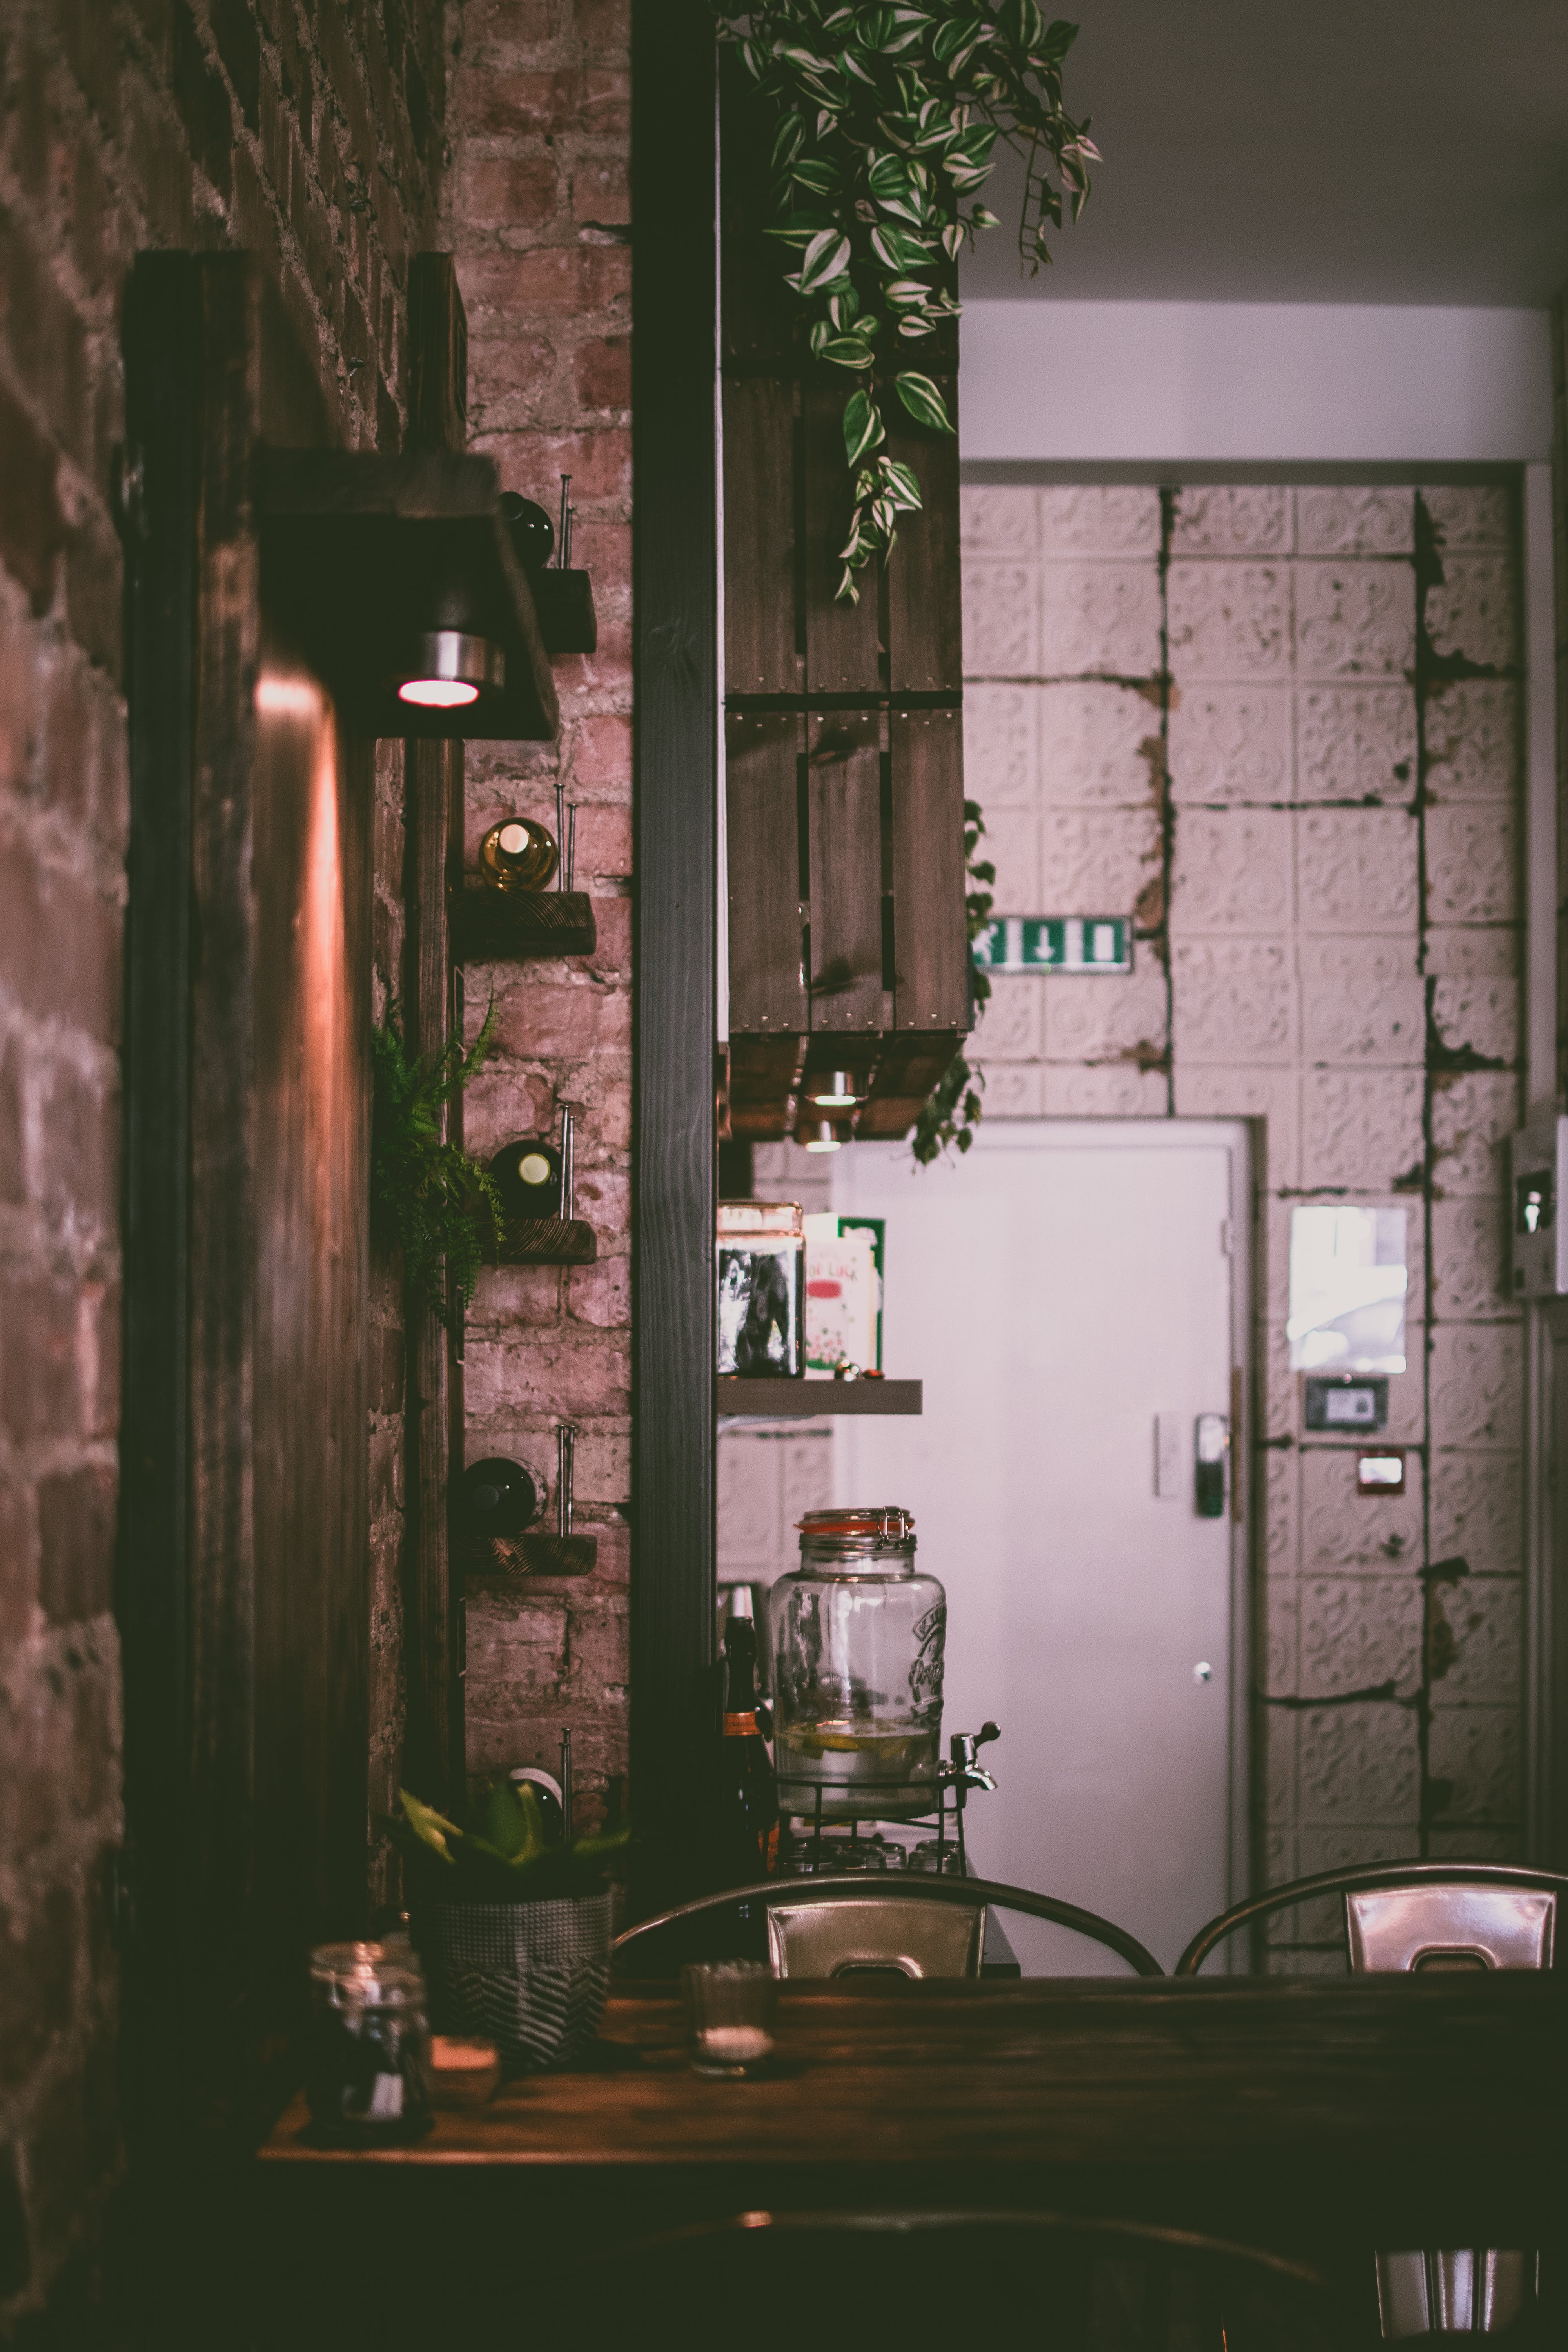 Architectural Photography of Kitchen